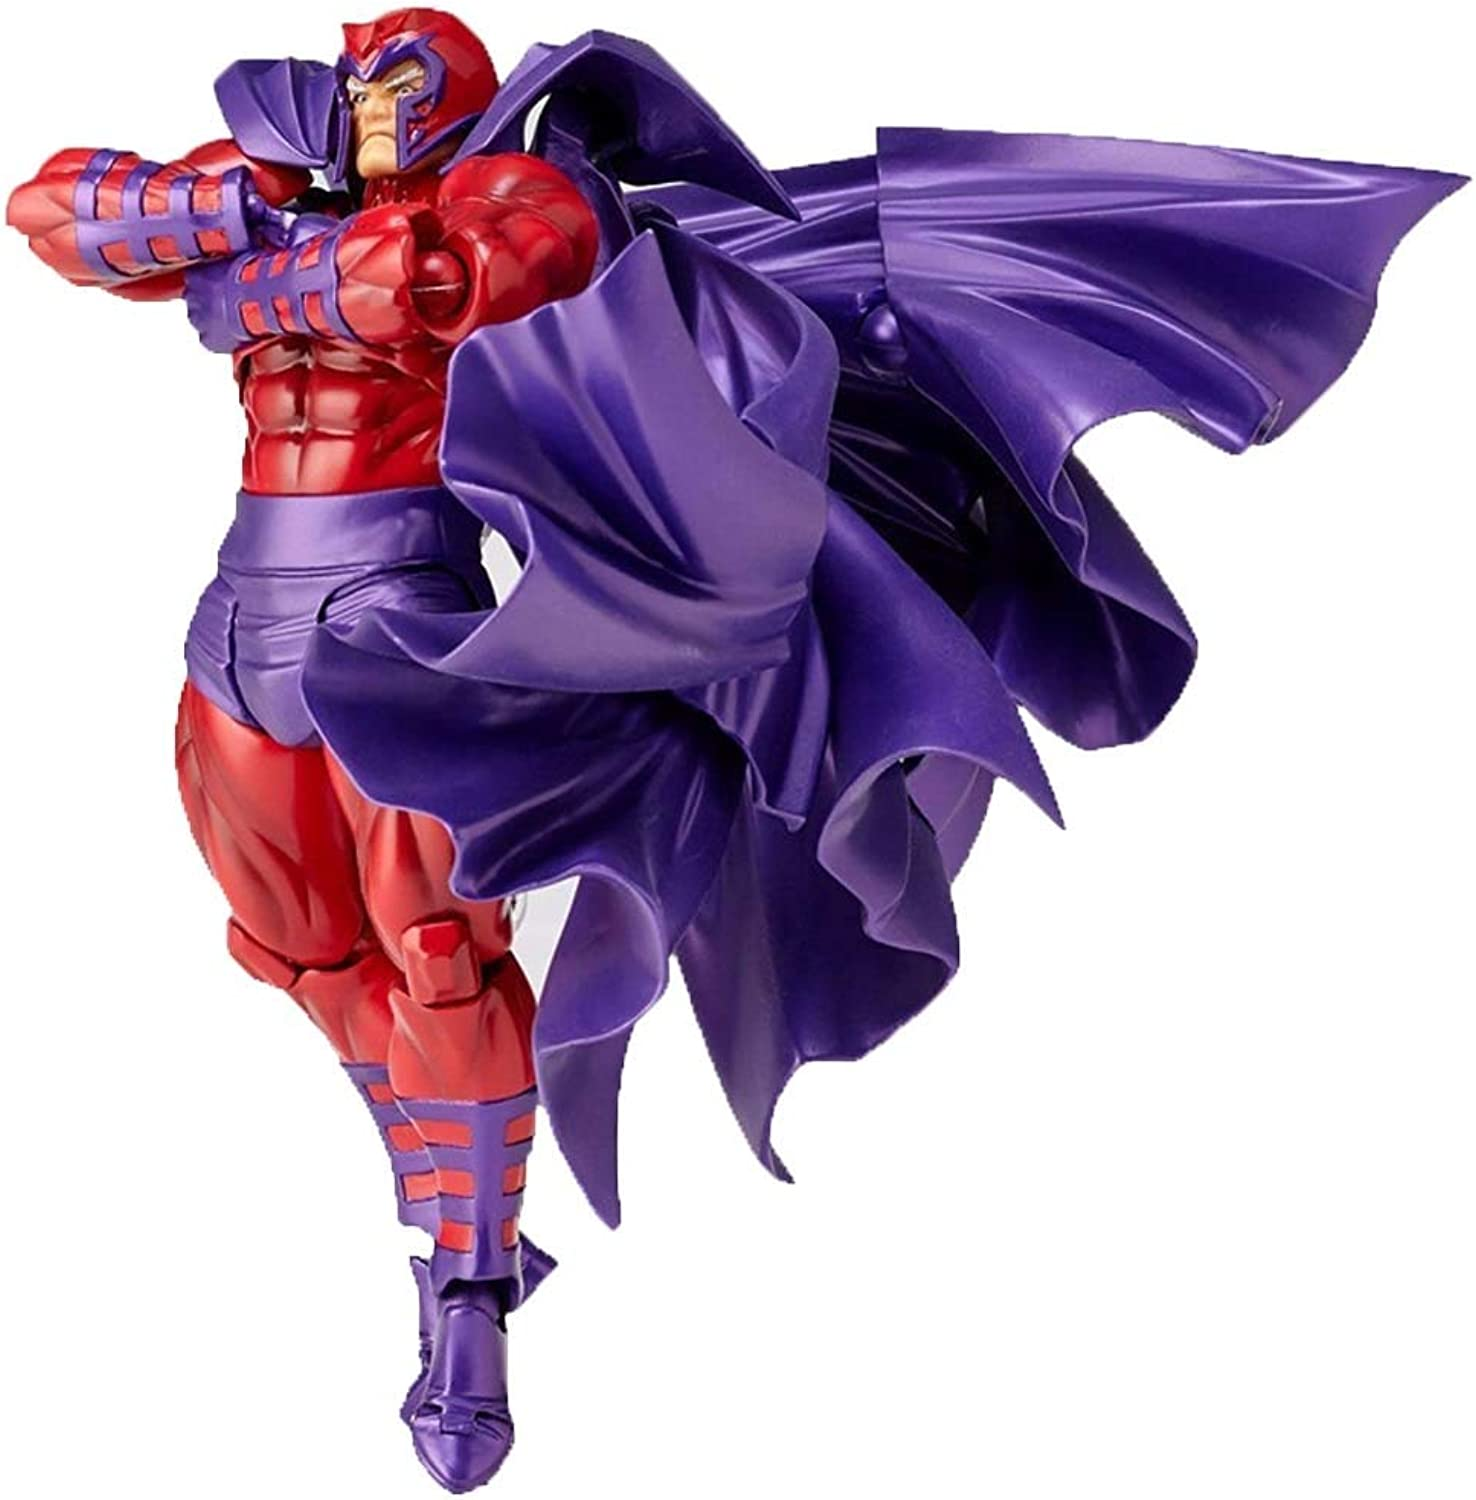 Llsdls Avengers Toy StatueMovable Model Toy Million Magnetic King